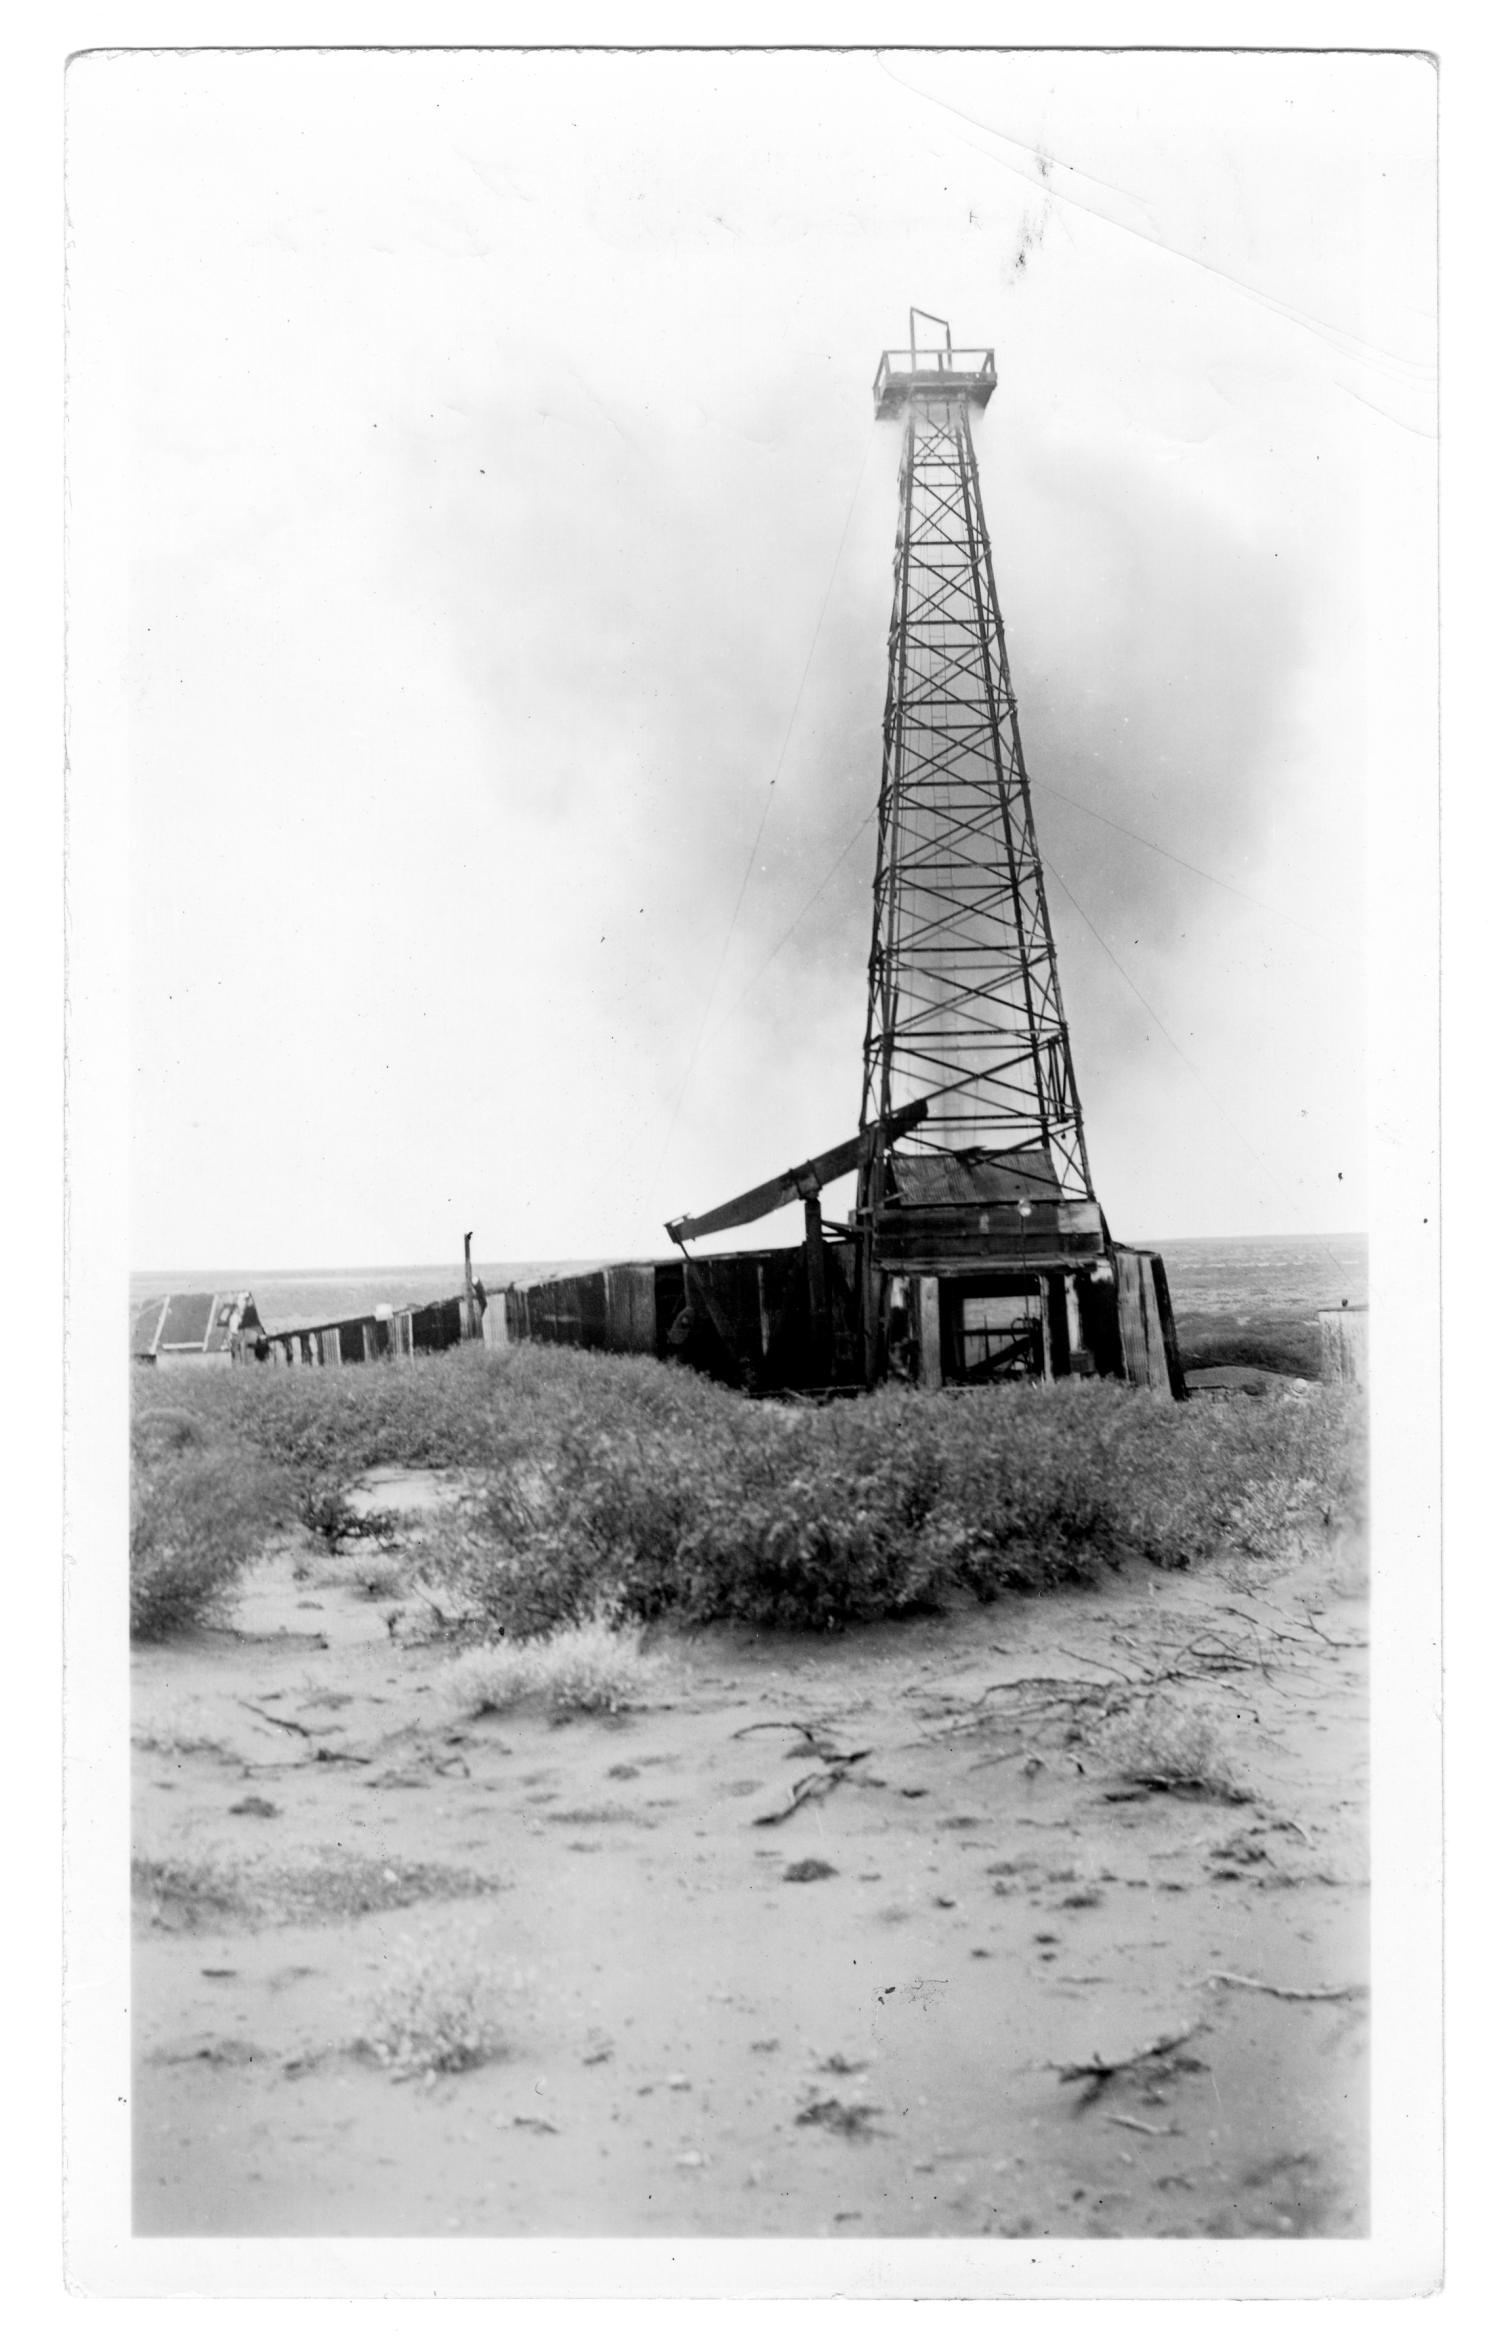 Oil Well in New Mexico                                                                                                      [Sequence #]: 1 of 2